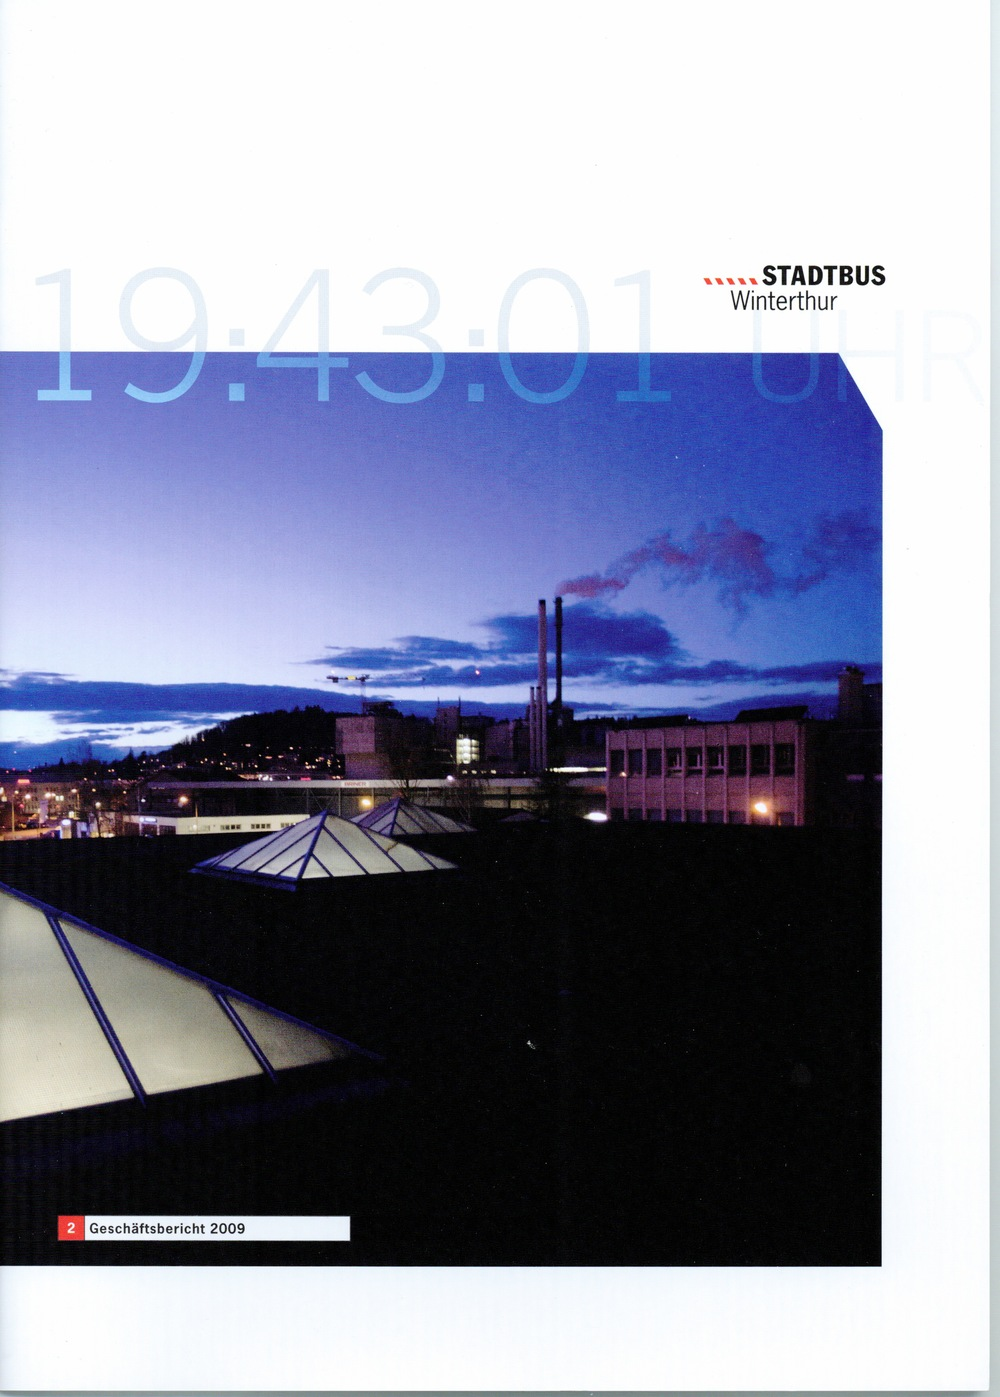 stadtbus-winterthur-annual-report-cover-photography-video-production-by-brilliant-lens.jpg